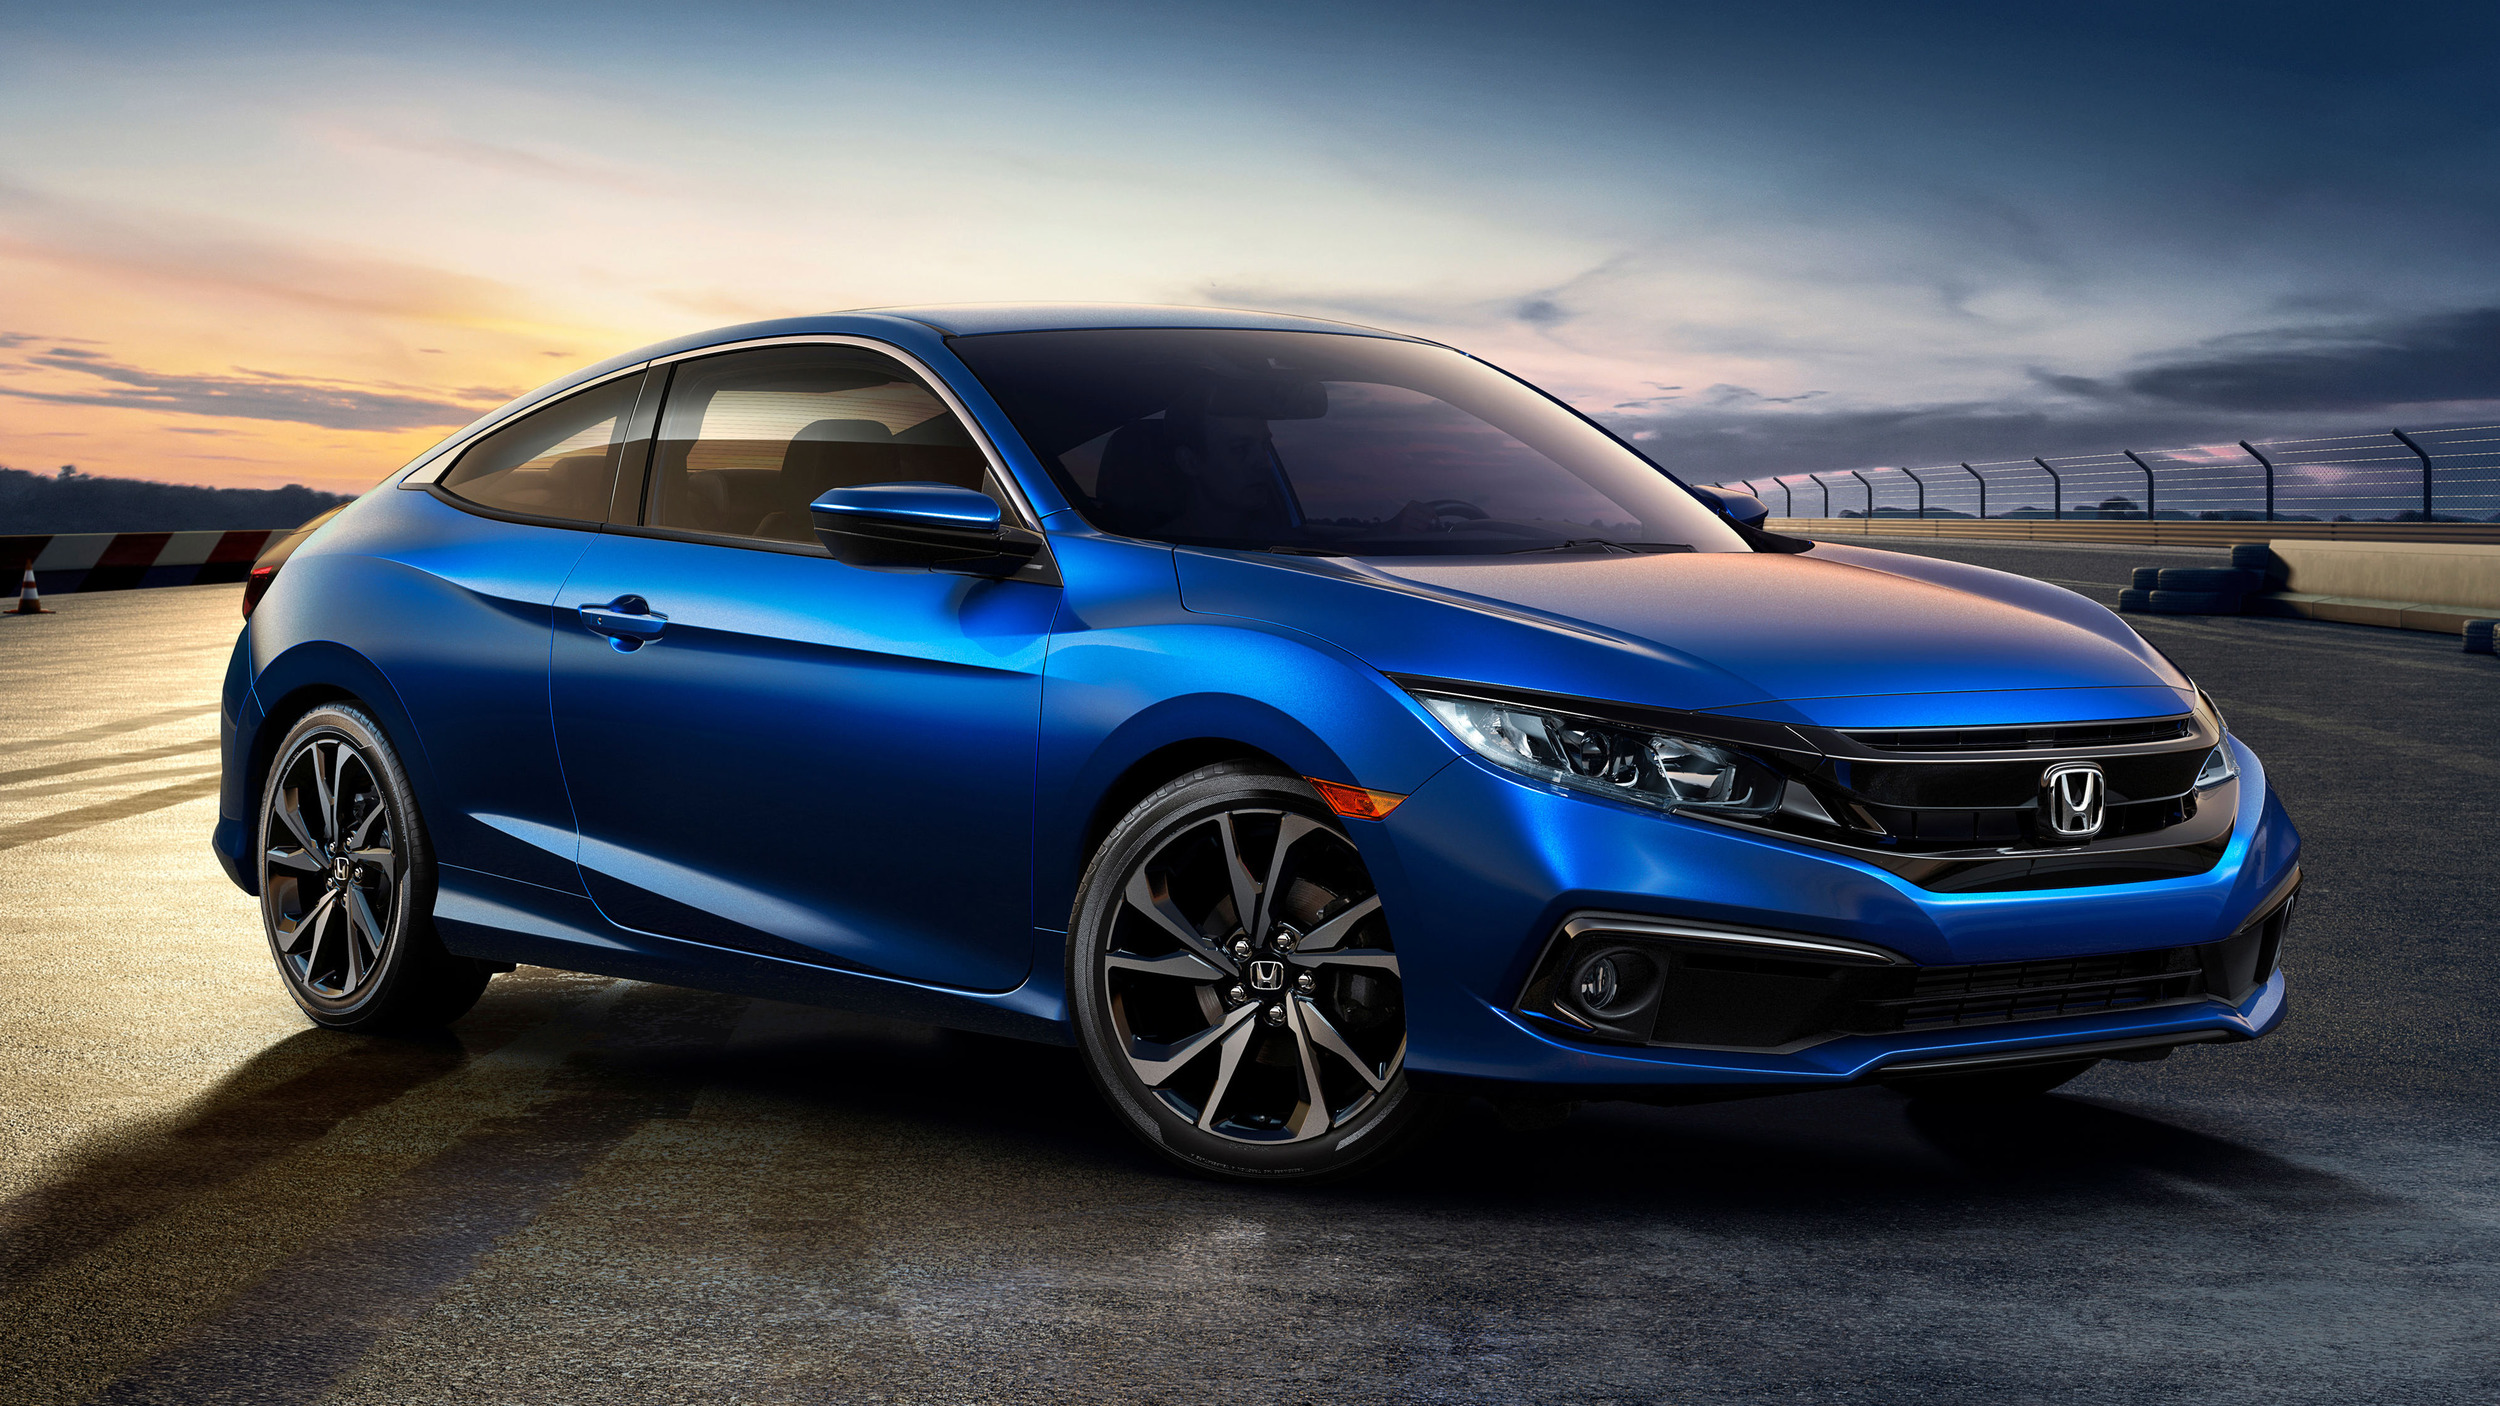 2019-honda-civic-sport-coupe-2-1.jpg